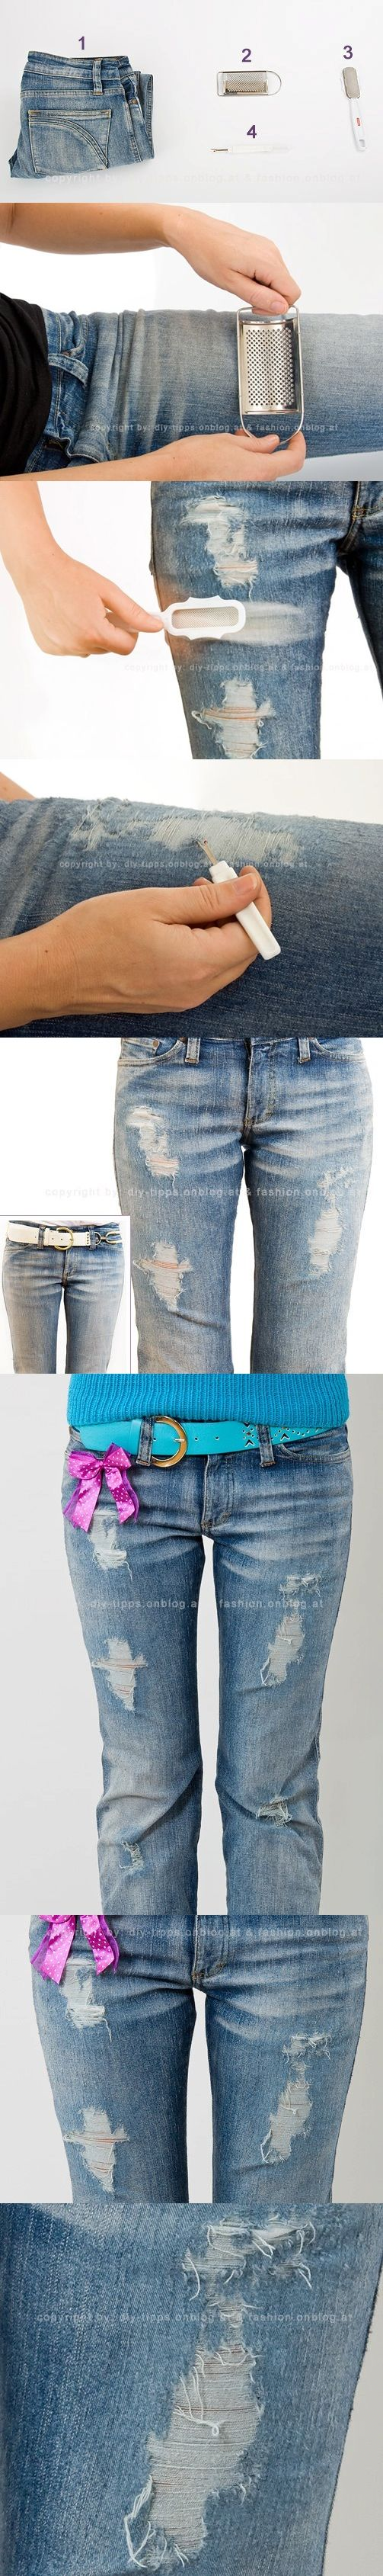 how to make your own holy jeans got to try this!